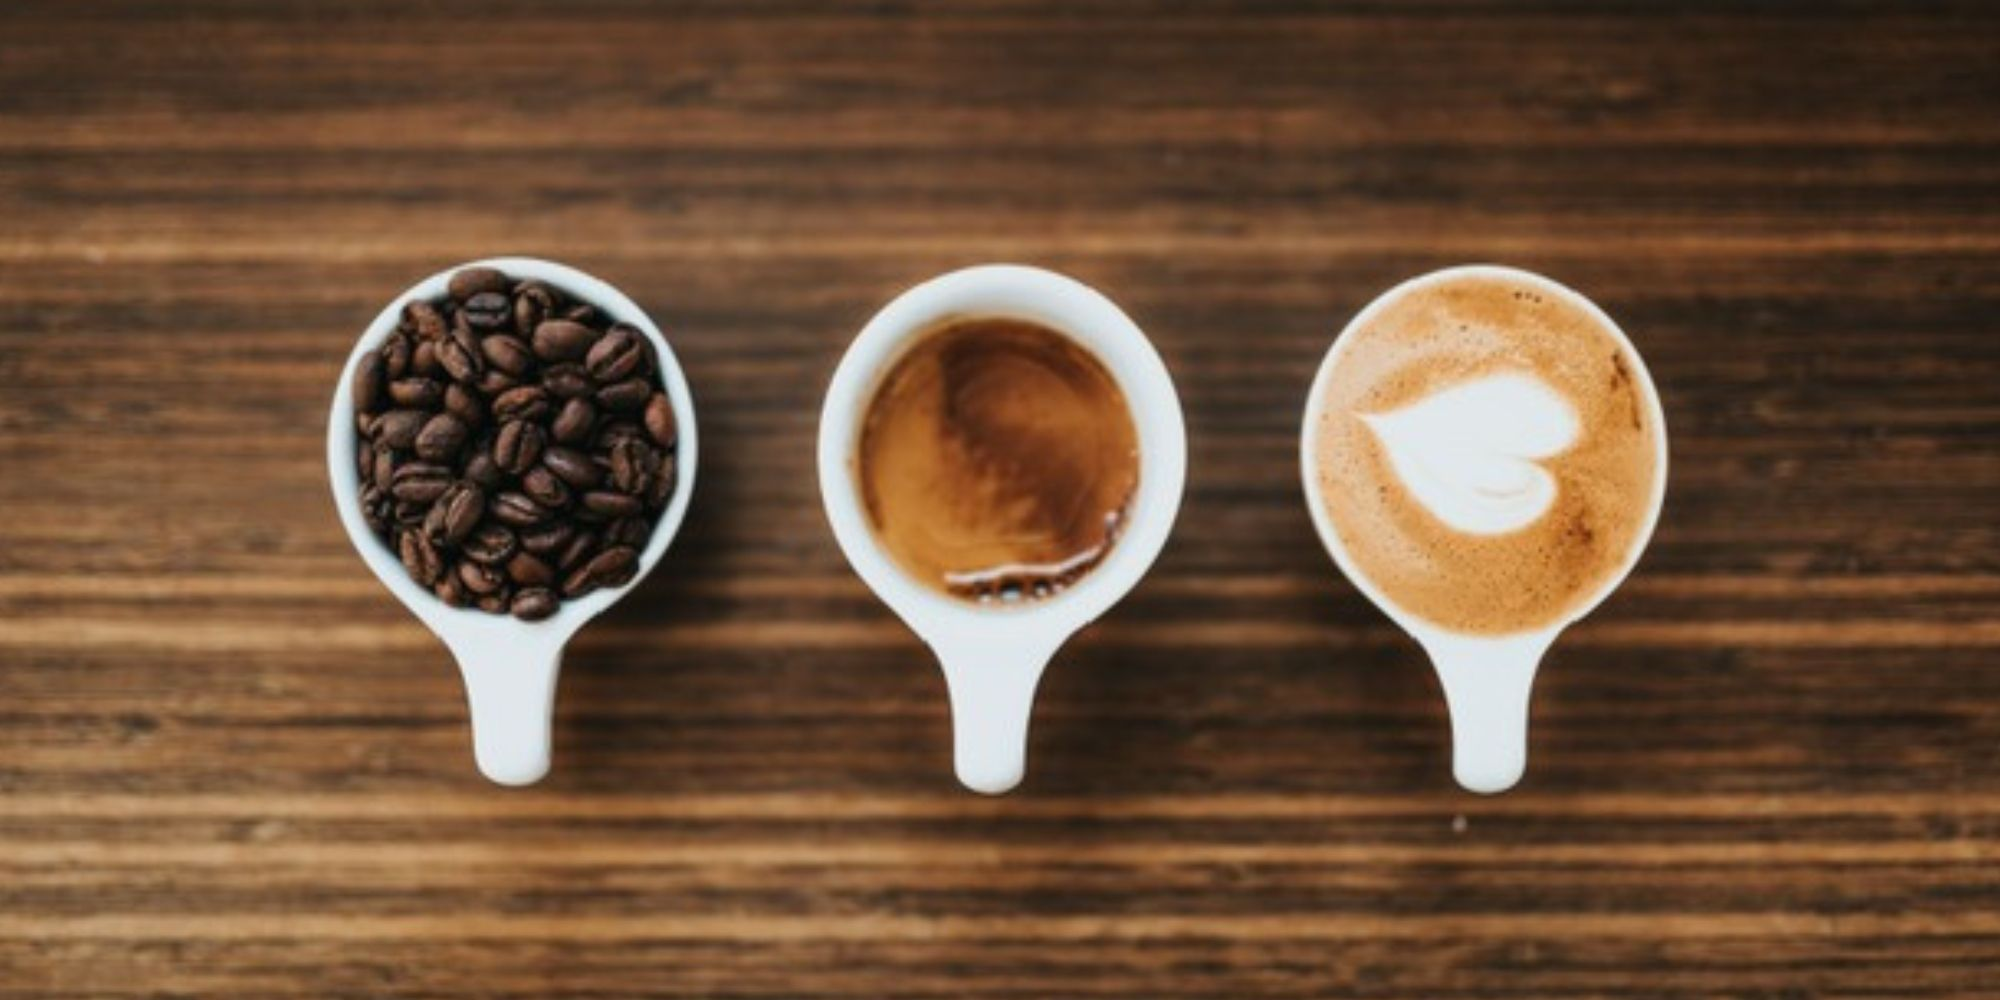 three white espresso cups filled with coffee